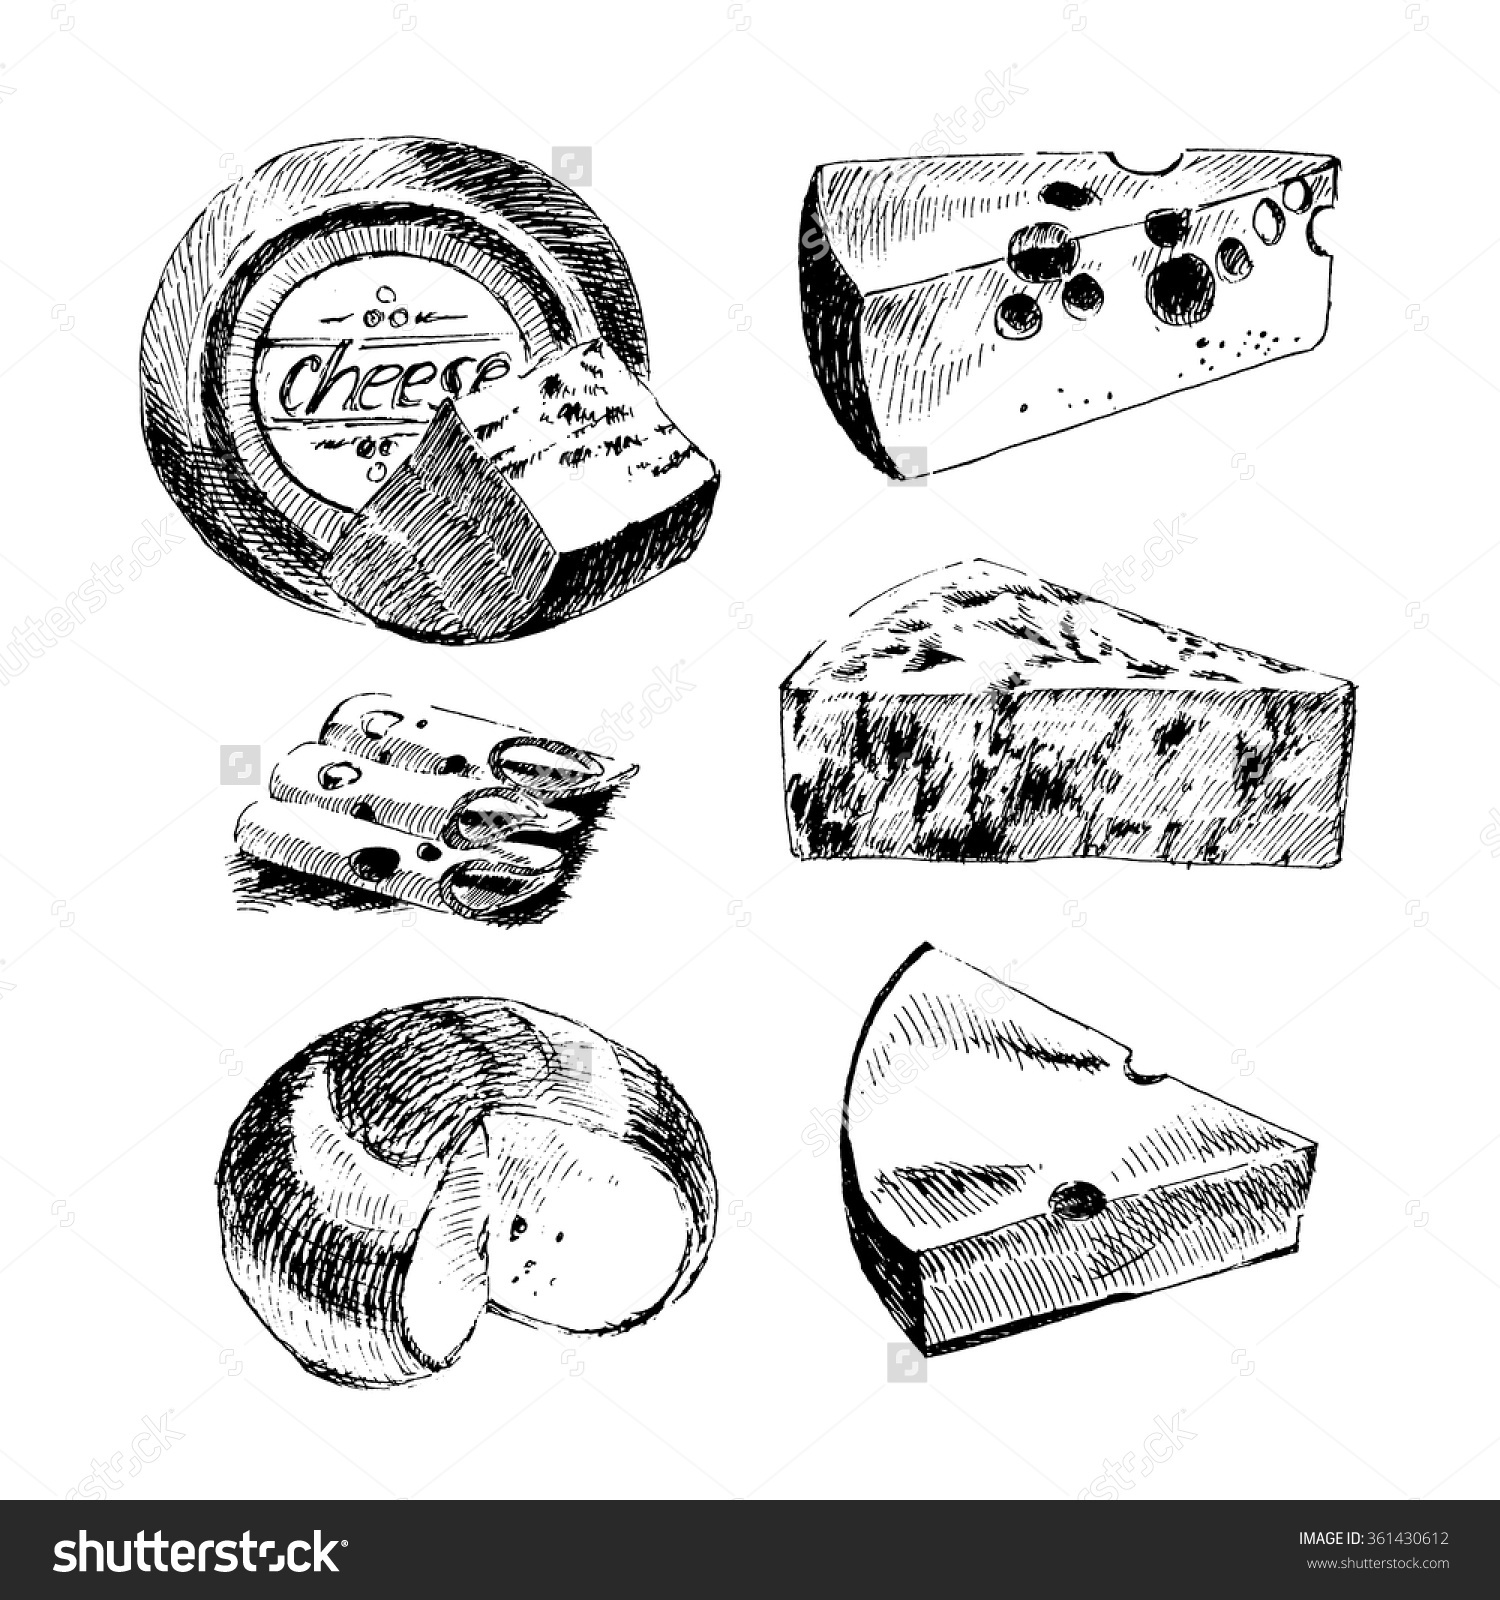 Cheese clipart parmesan. Edammer clipground vector hand